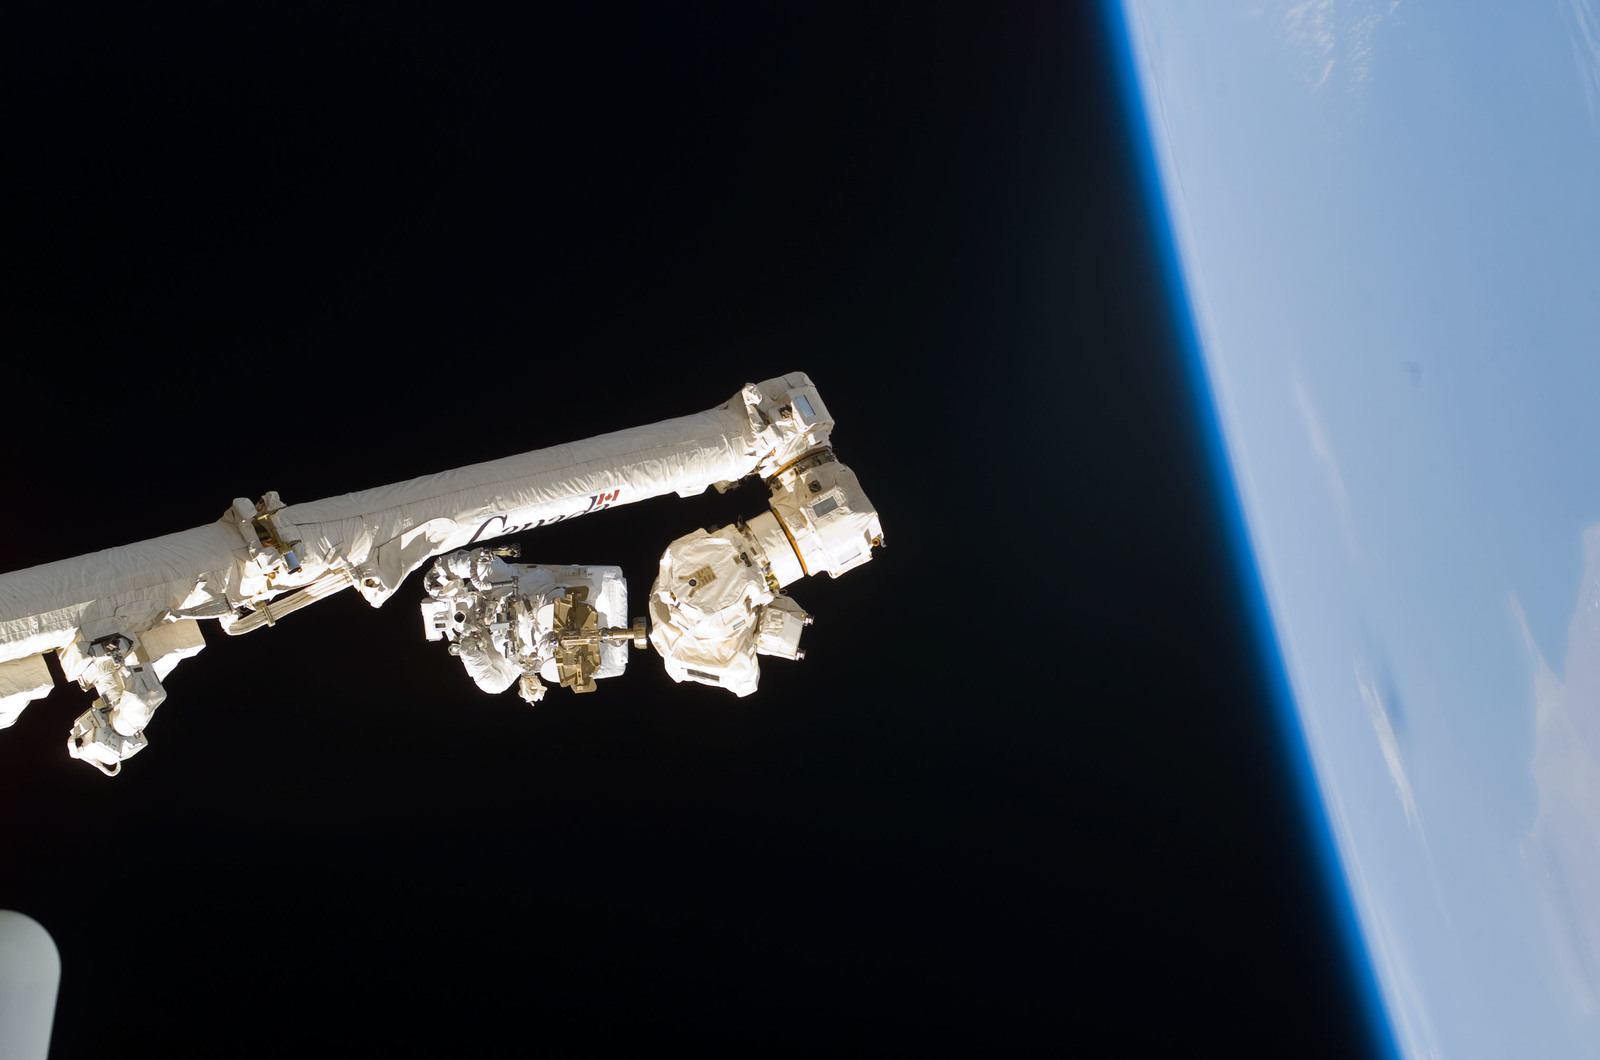 S114E6263 - STS-114 - Robinson on SSRMS Canadarm2 during EVA 3